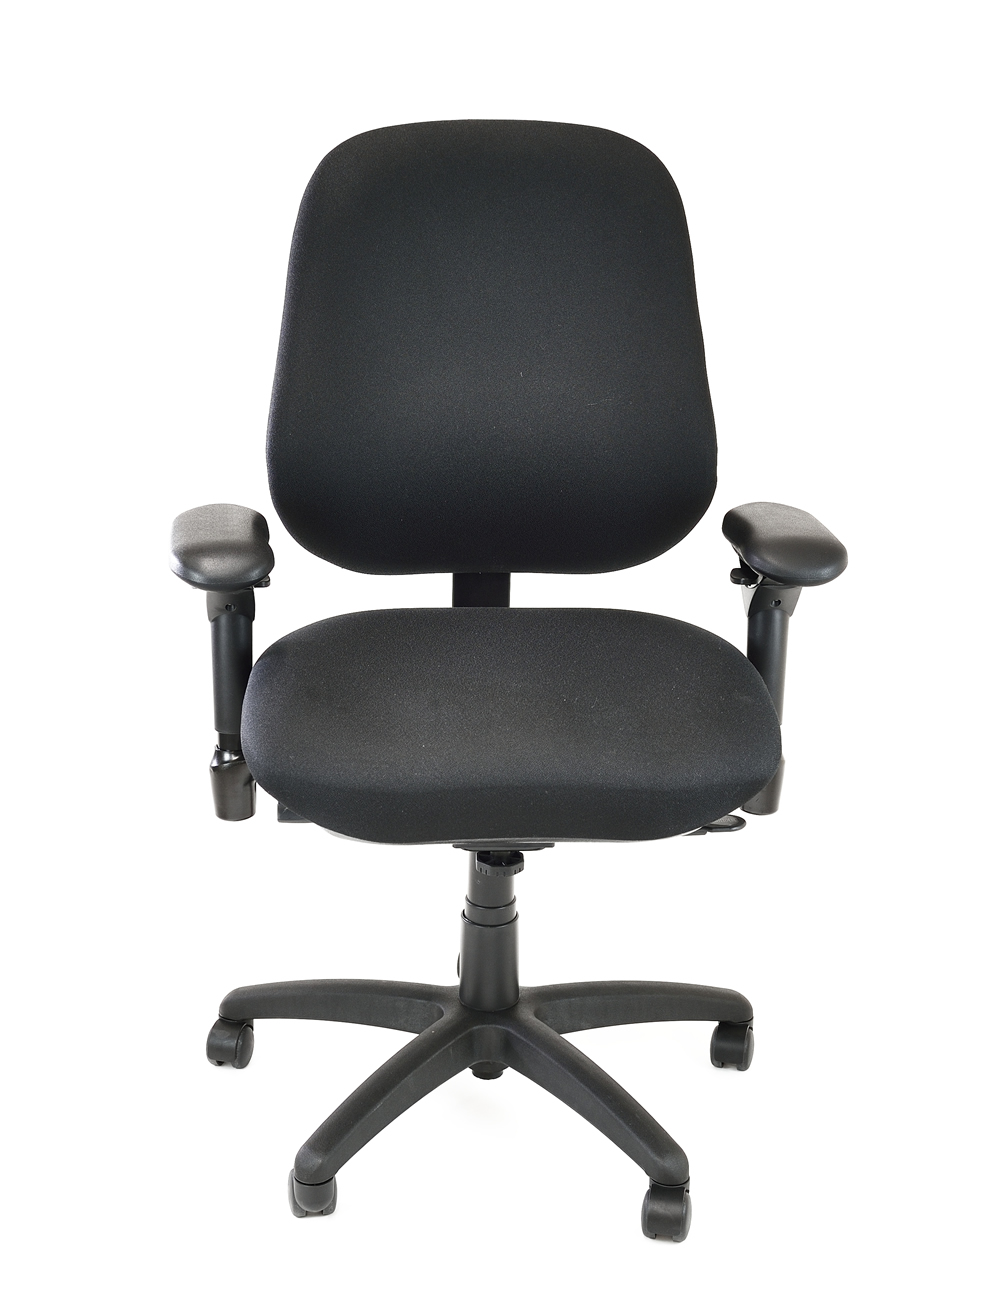 Bodyblit J2509 Stretch Tall Chair Seating Solution For